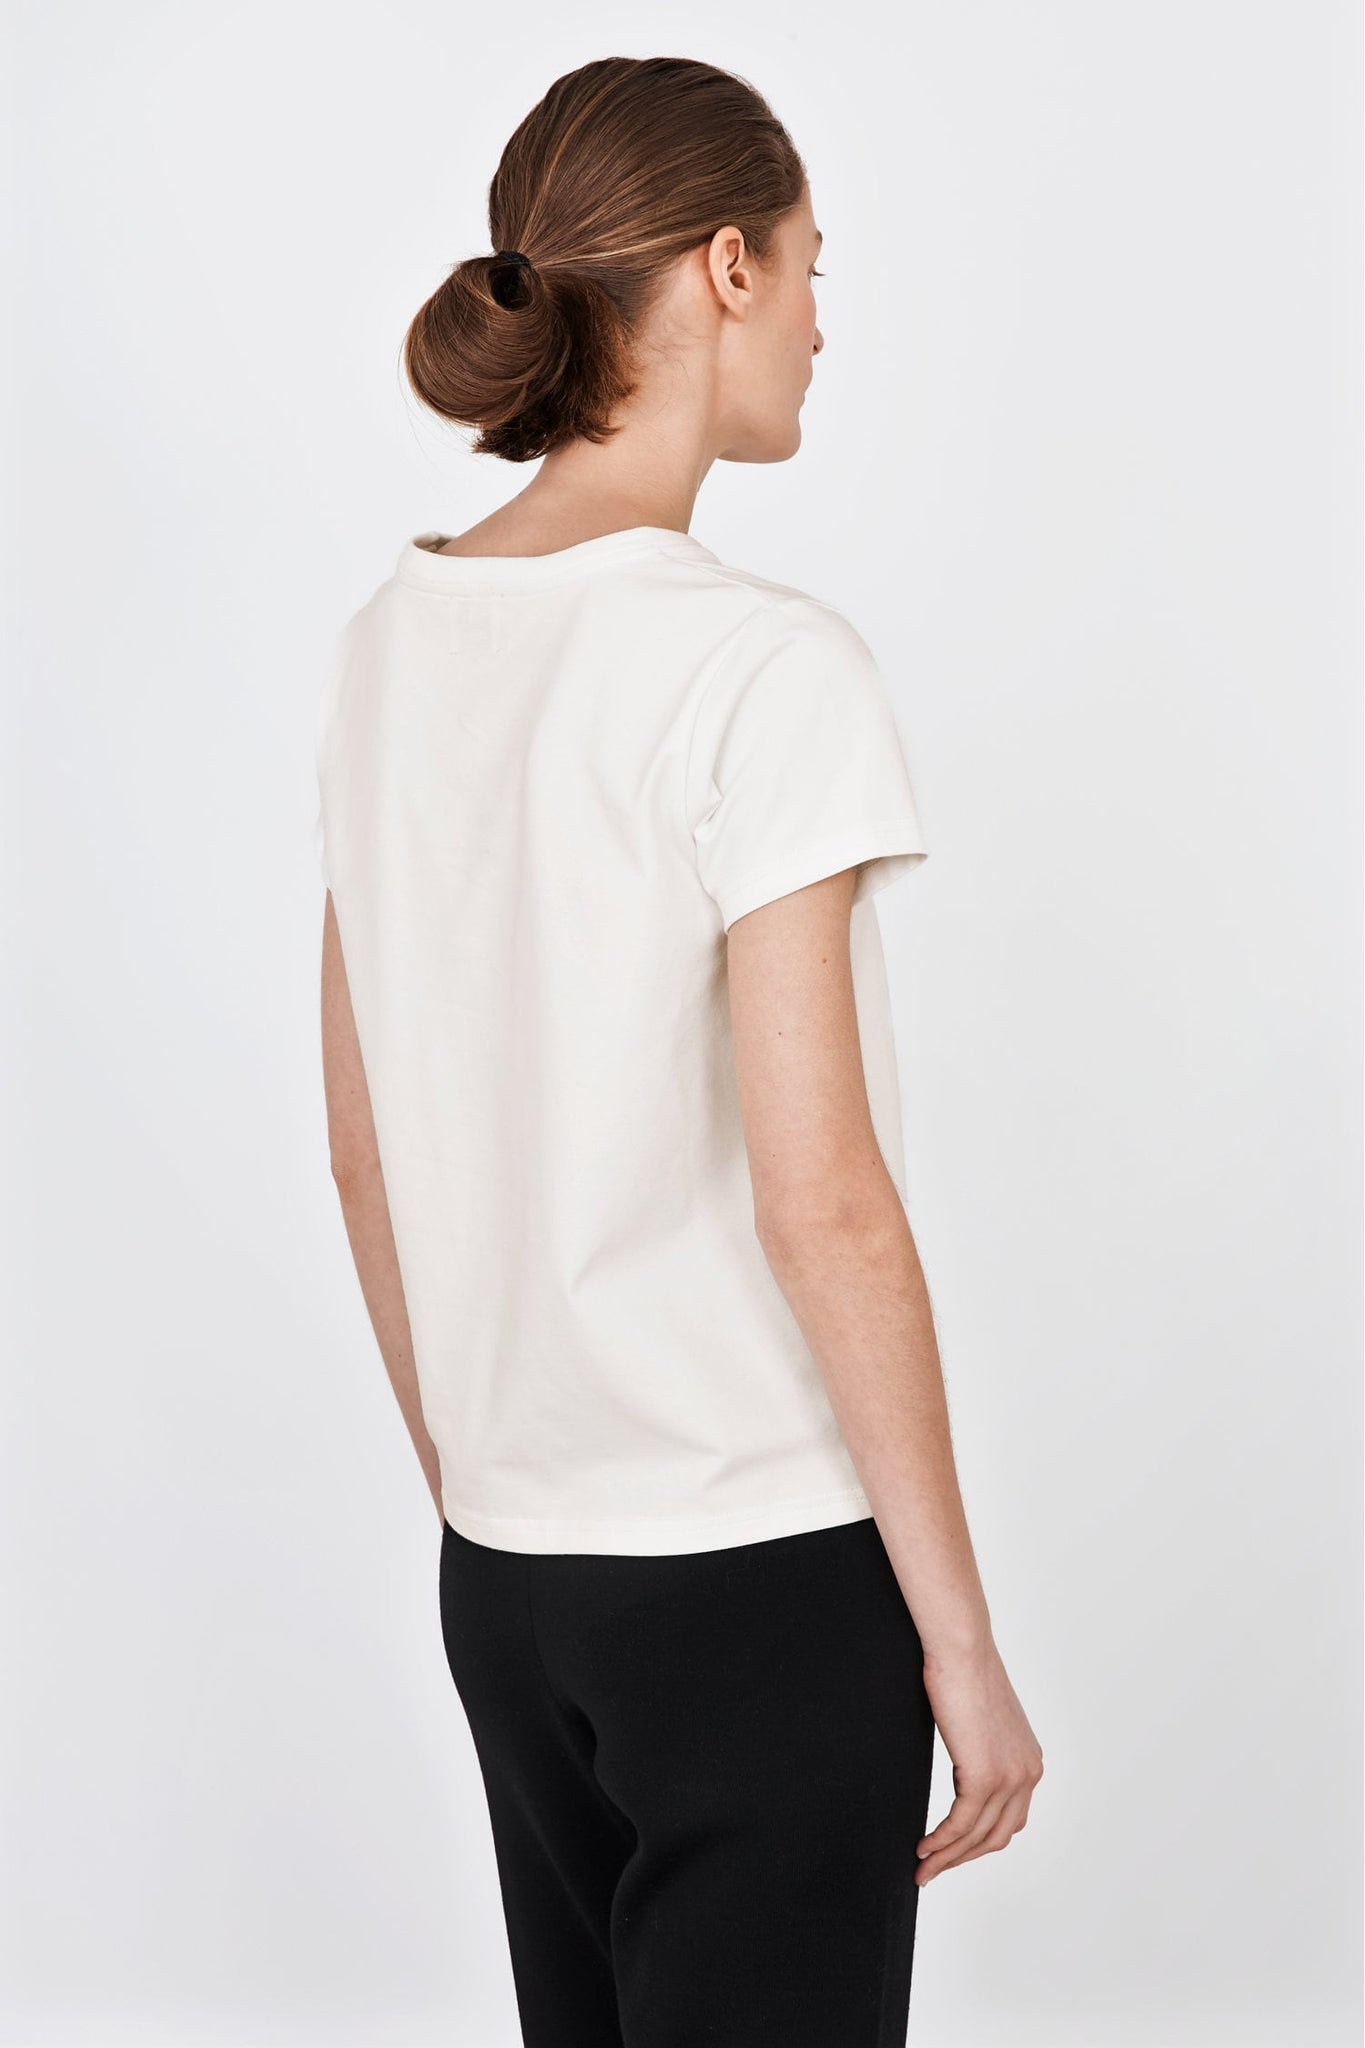 Kim t-shirt in natural white